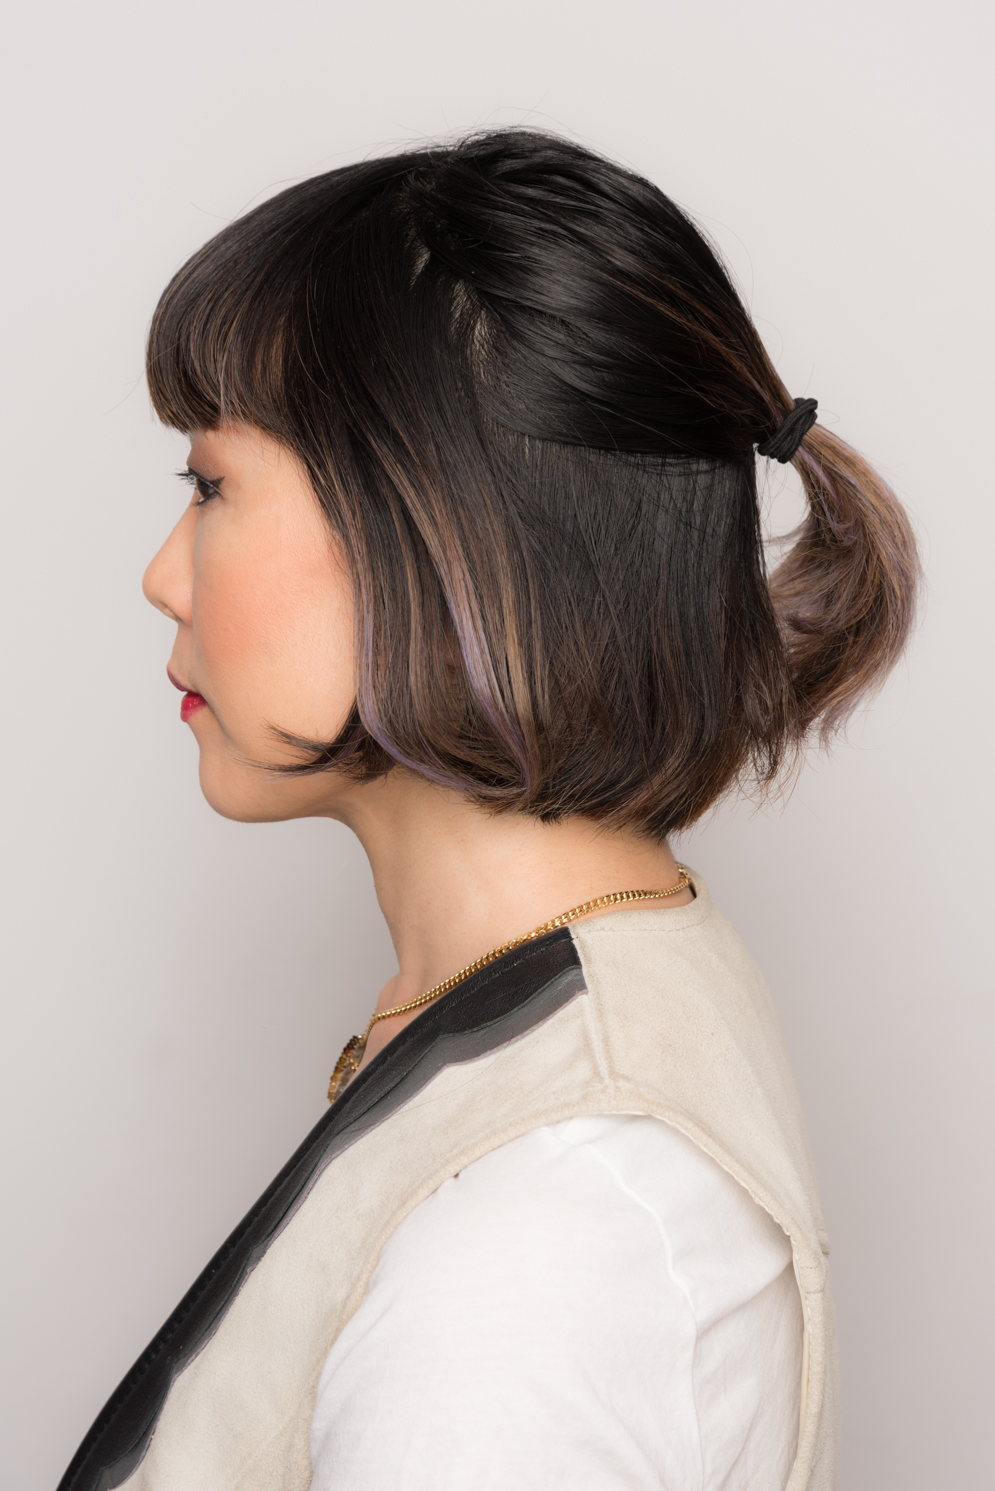 ROCK MAMA NYC LIFESTYLE BLOG -  HOW TO DO UP-DOS FOR SHORT BOB HAIR